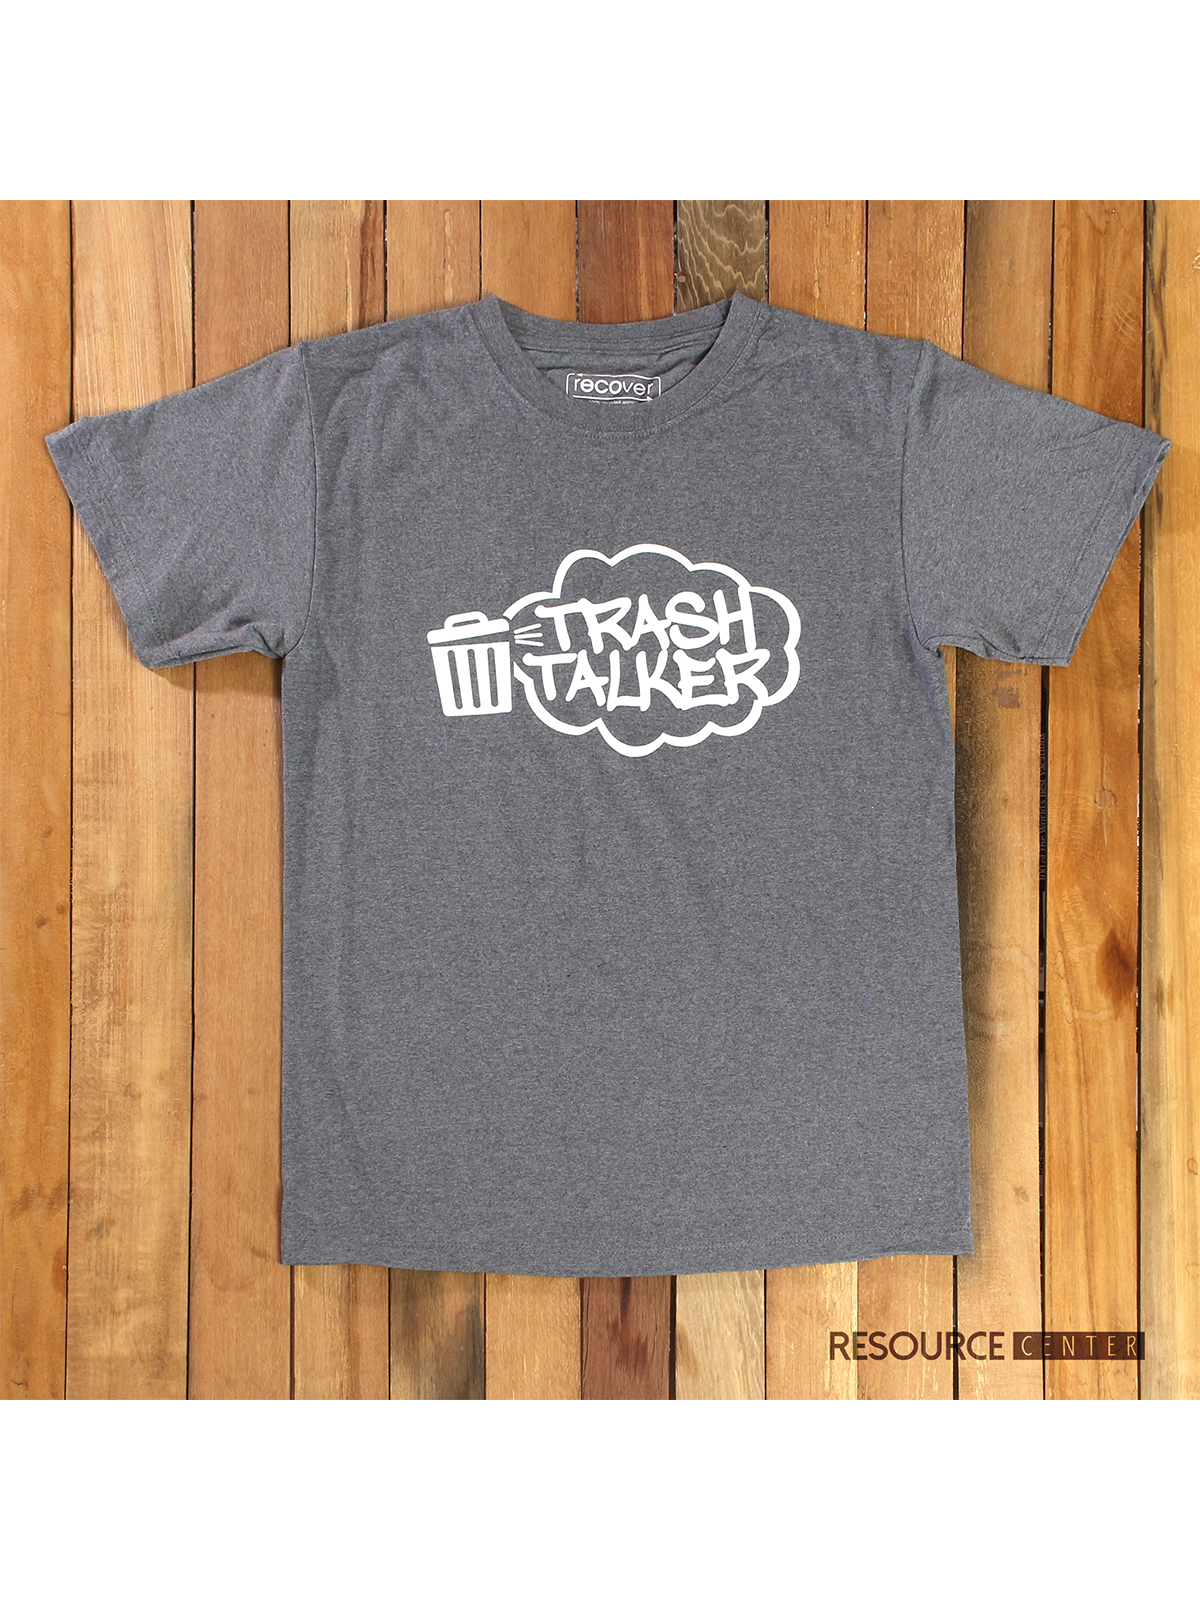 TRASH TALKER T-SHIRT title=